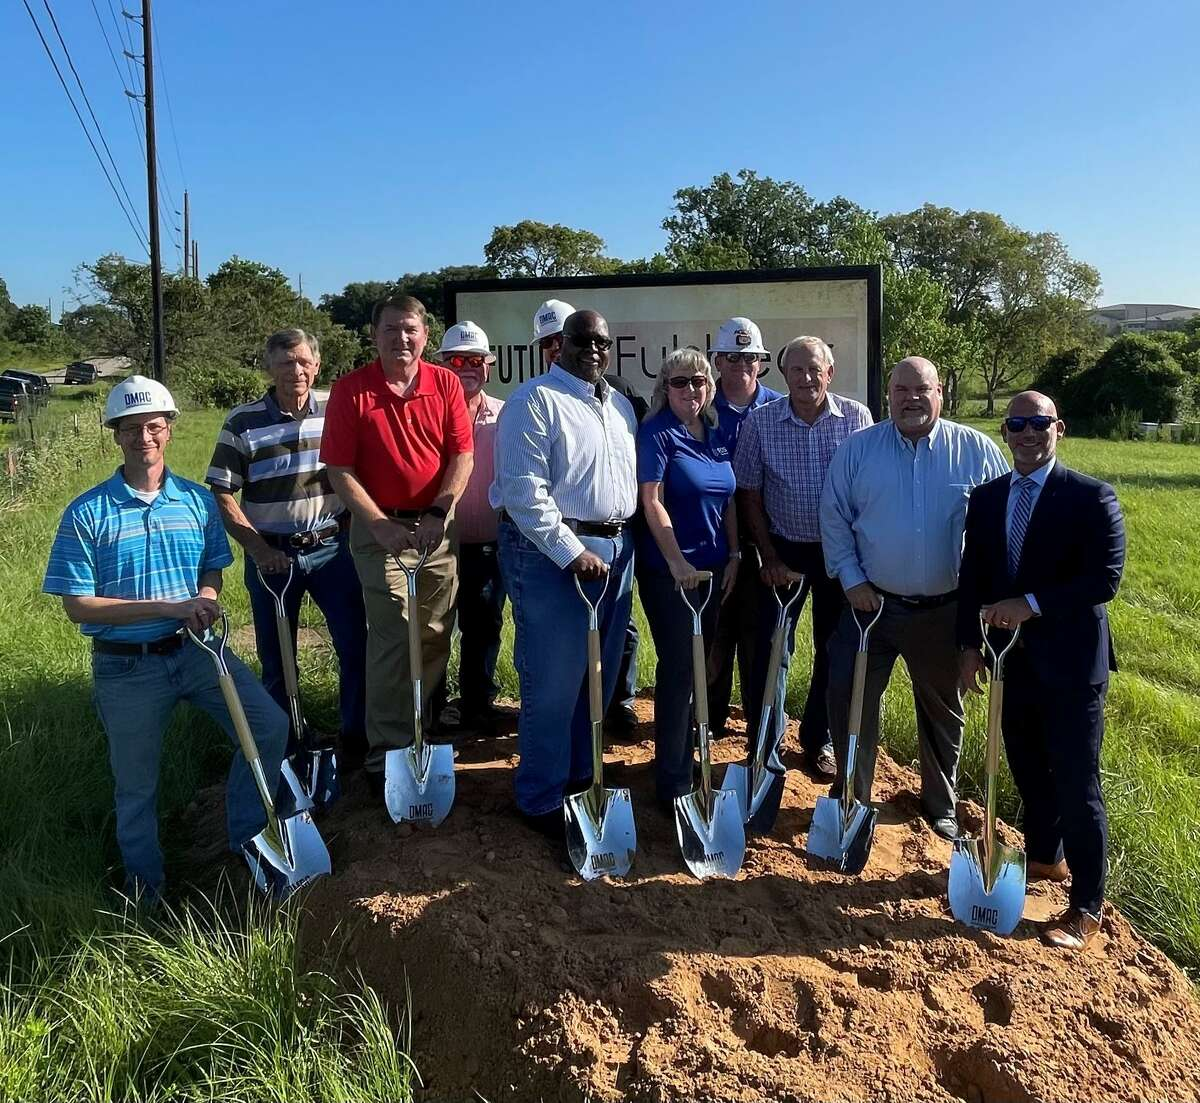 The Fulshear Church of Christ holds a groundbreaking ceremony for its future church building near FM 1093 and Charger Way in Fulshear on Monday, Aug. 23.